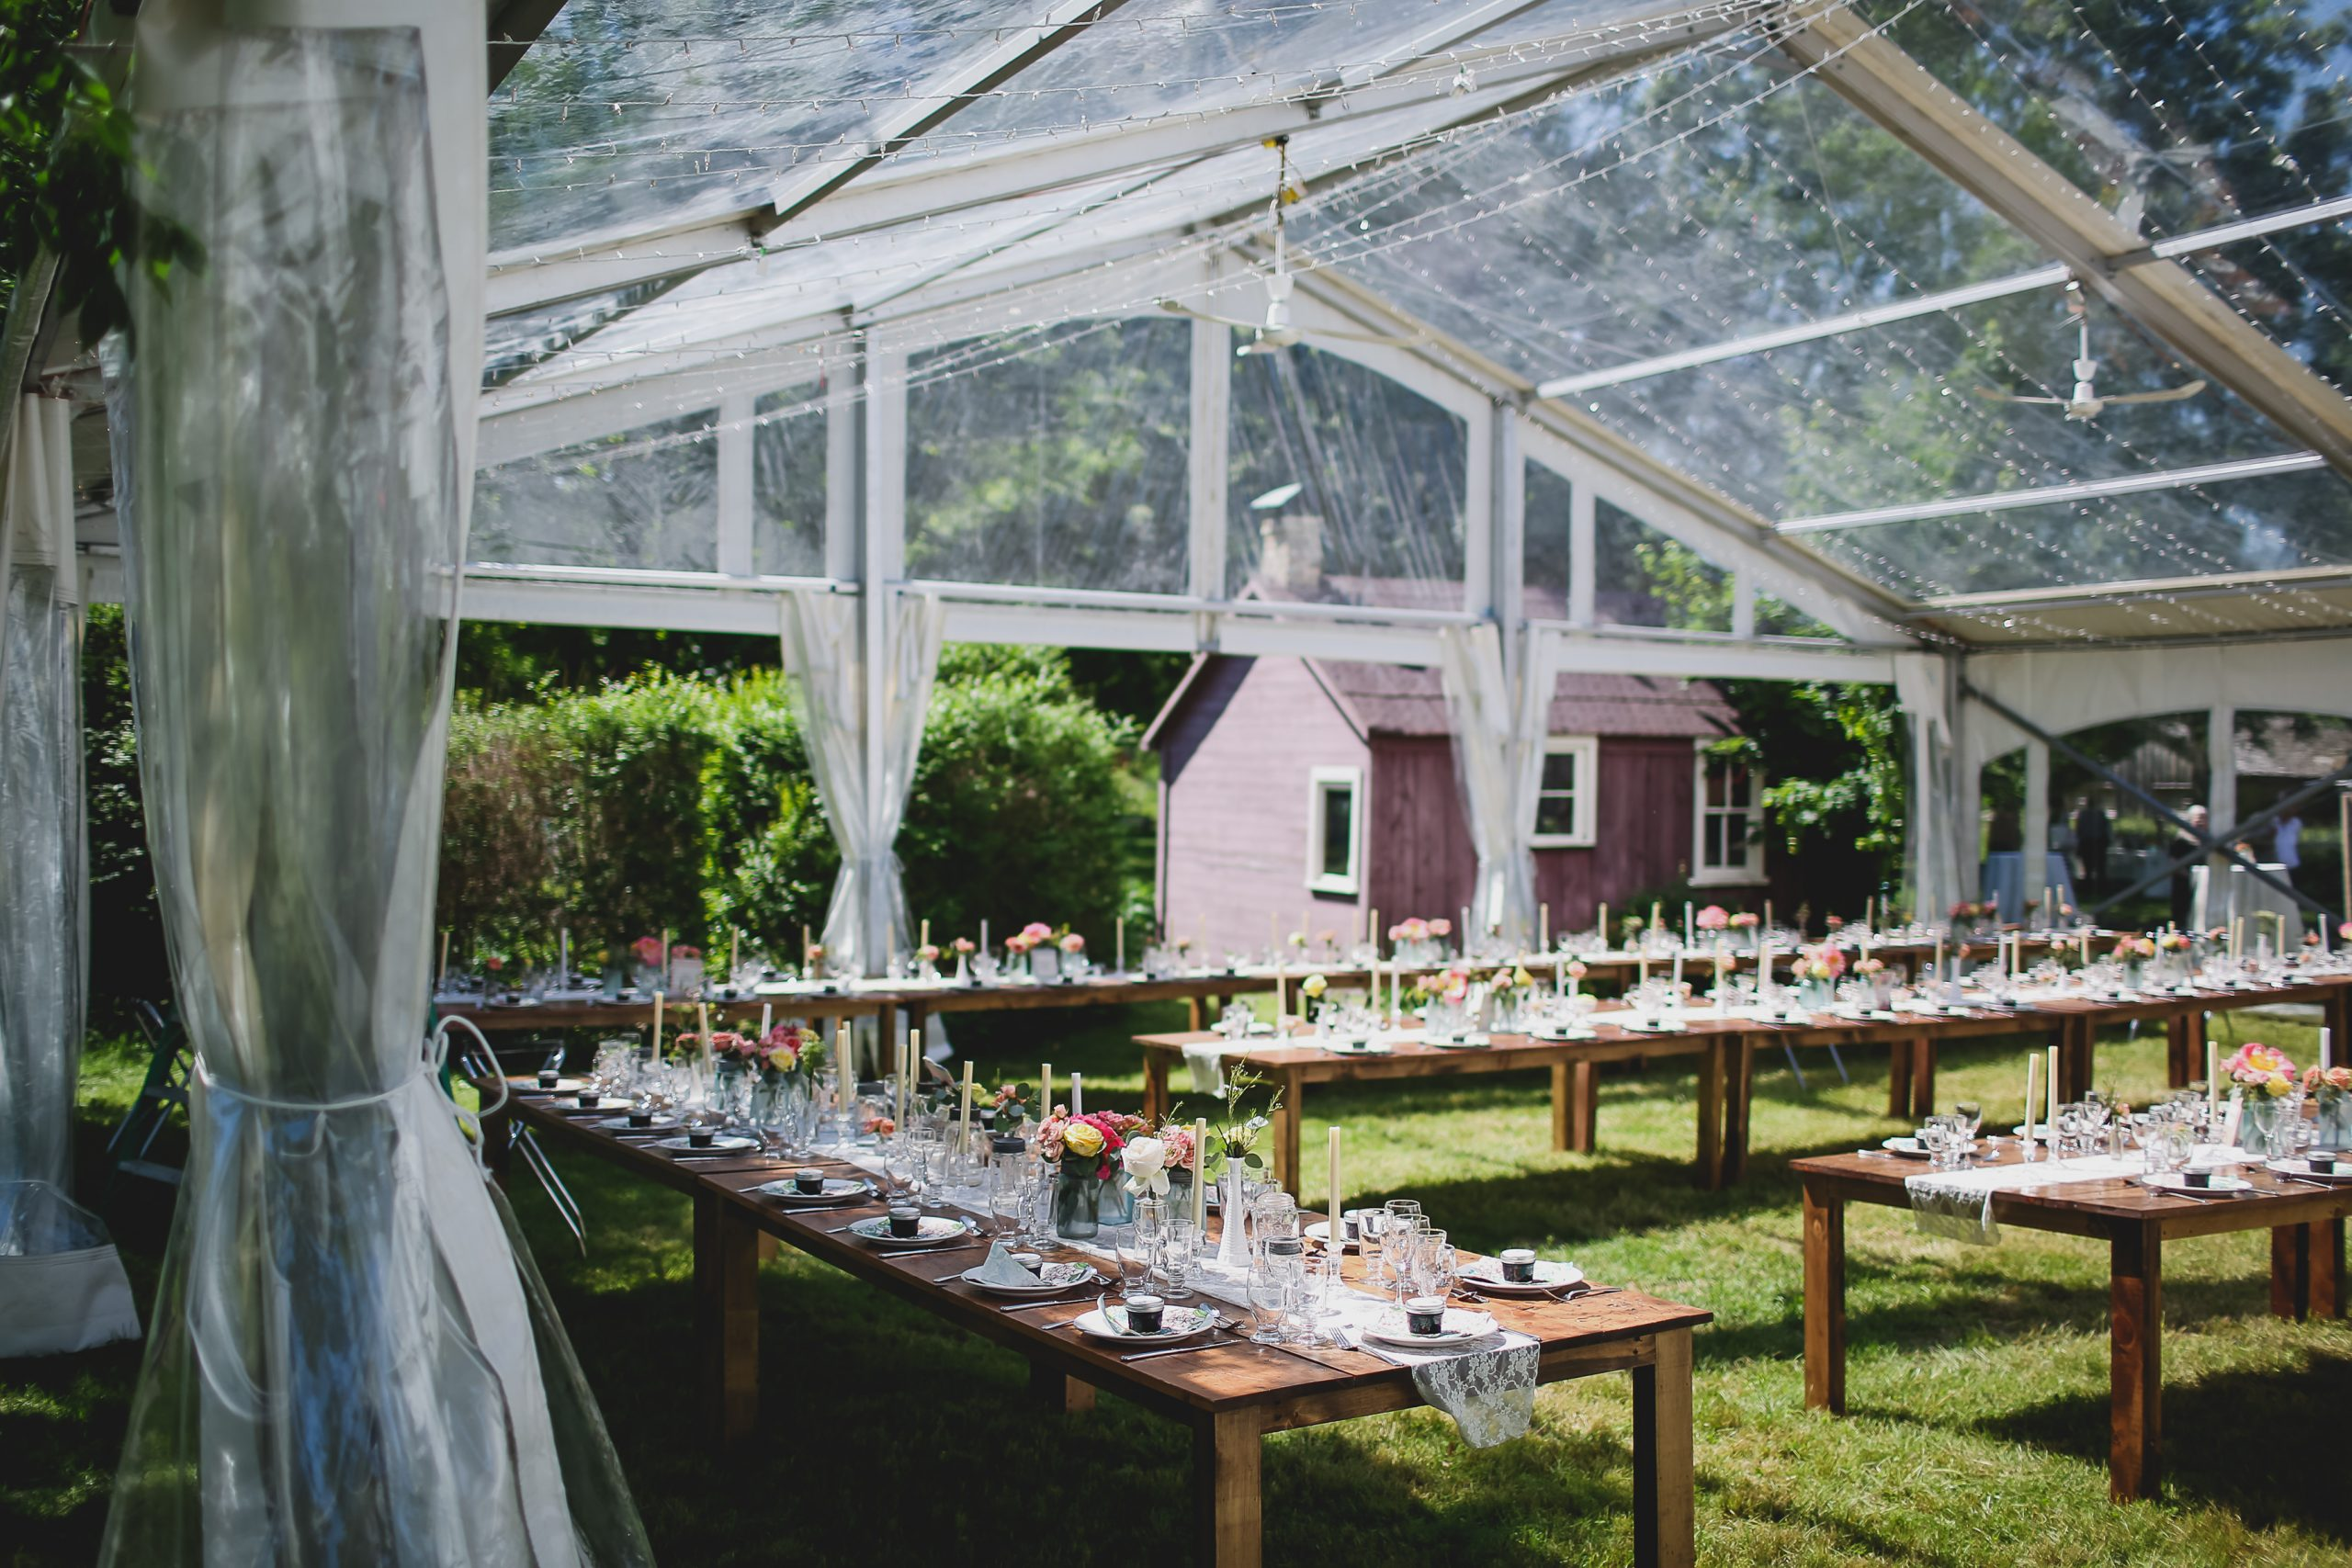 Tent outdoor wedding locations